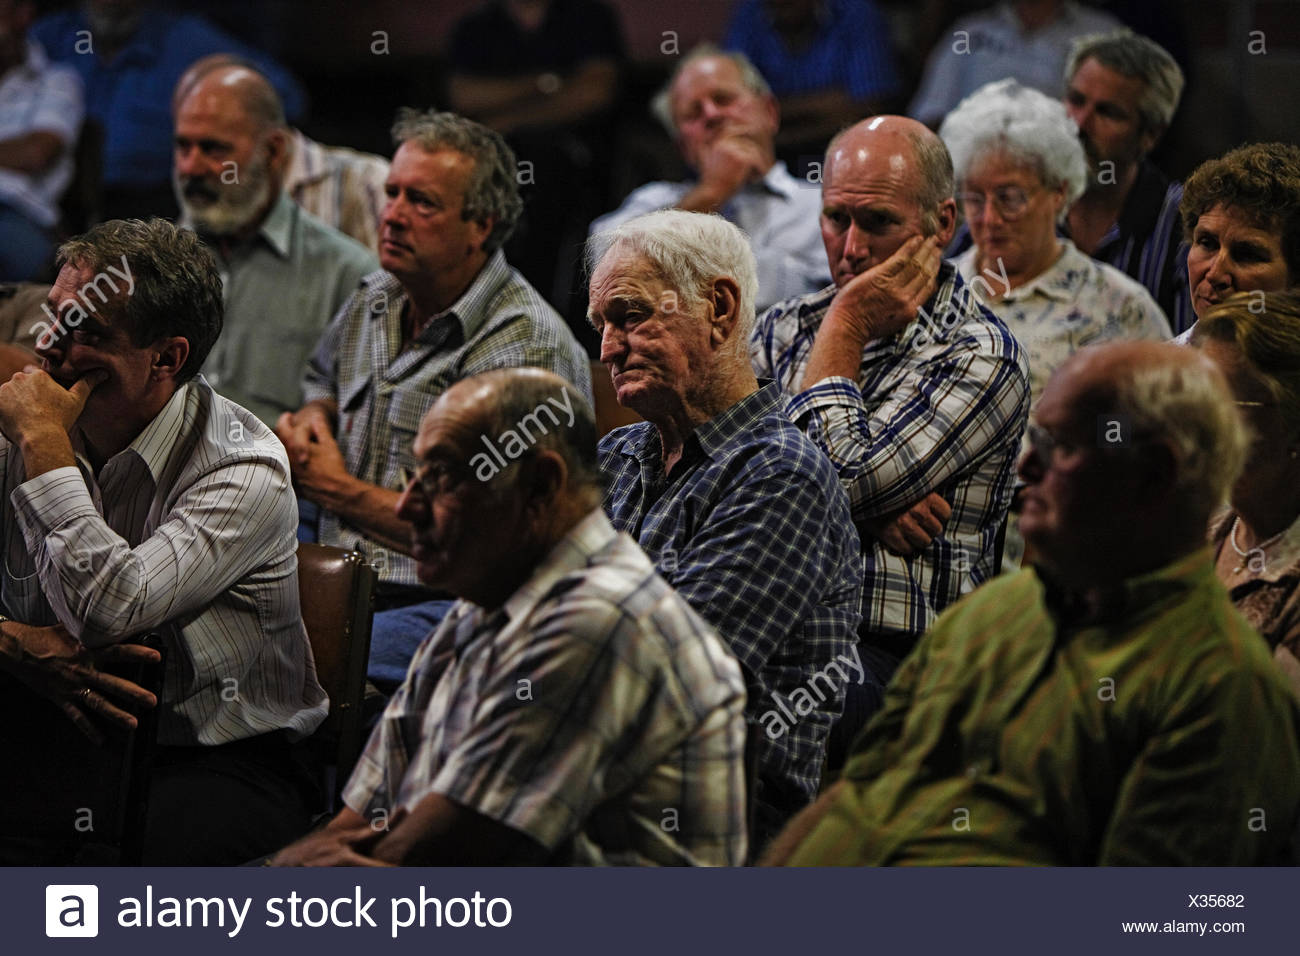 Rice farmers discuss water issues at a meeting. - Stock Image